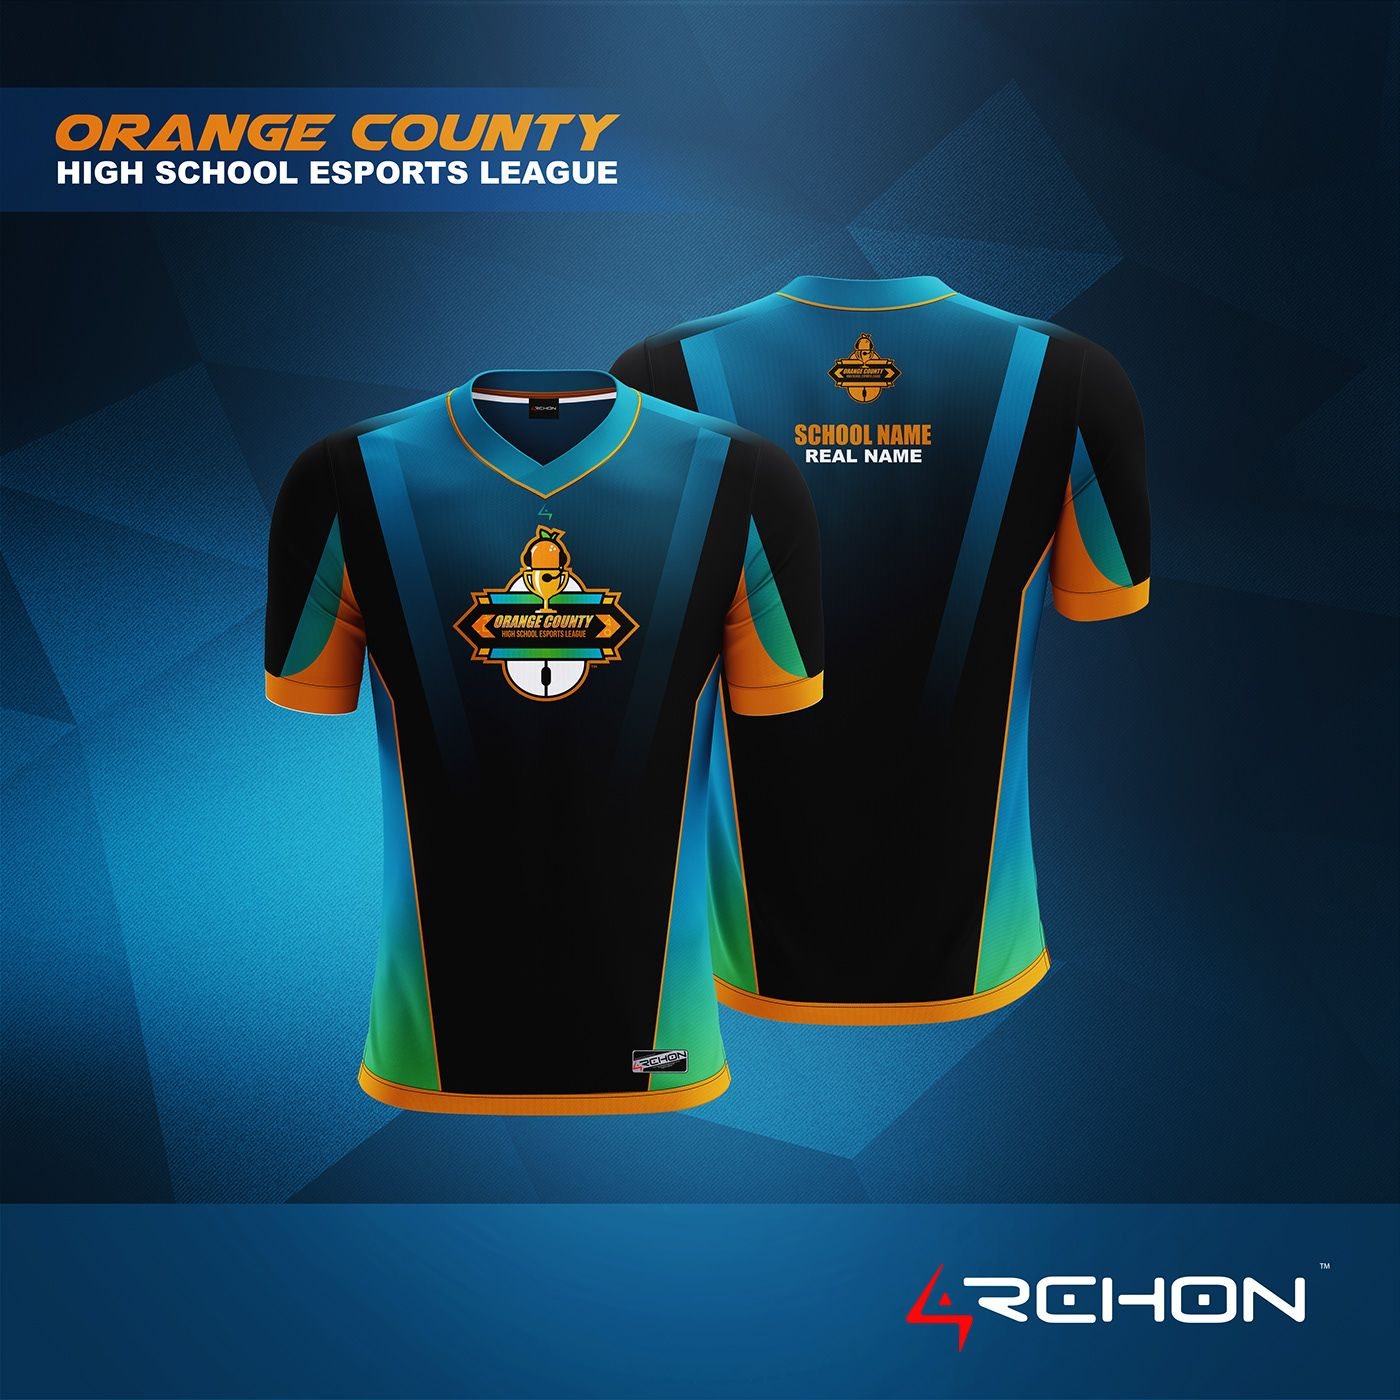 Archon Clothing Jersey's and Presentations on Behance